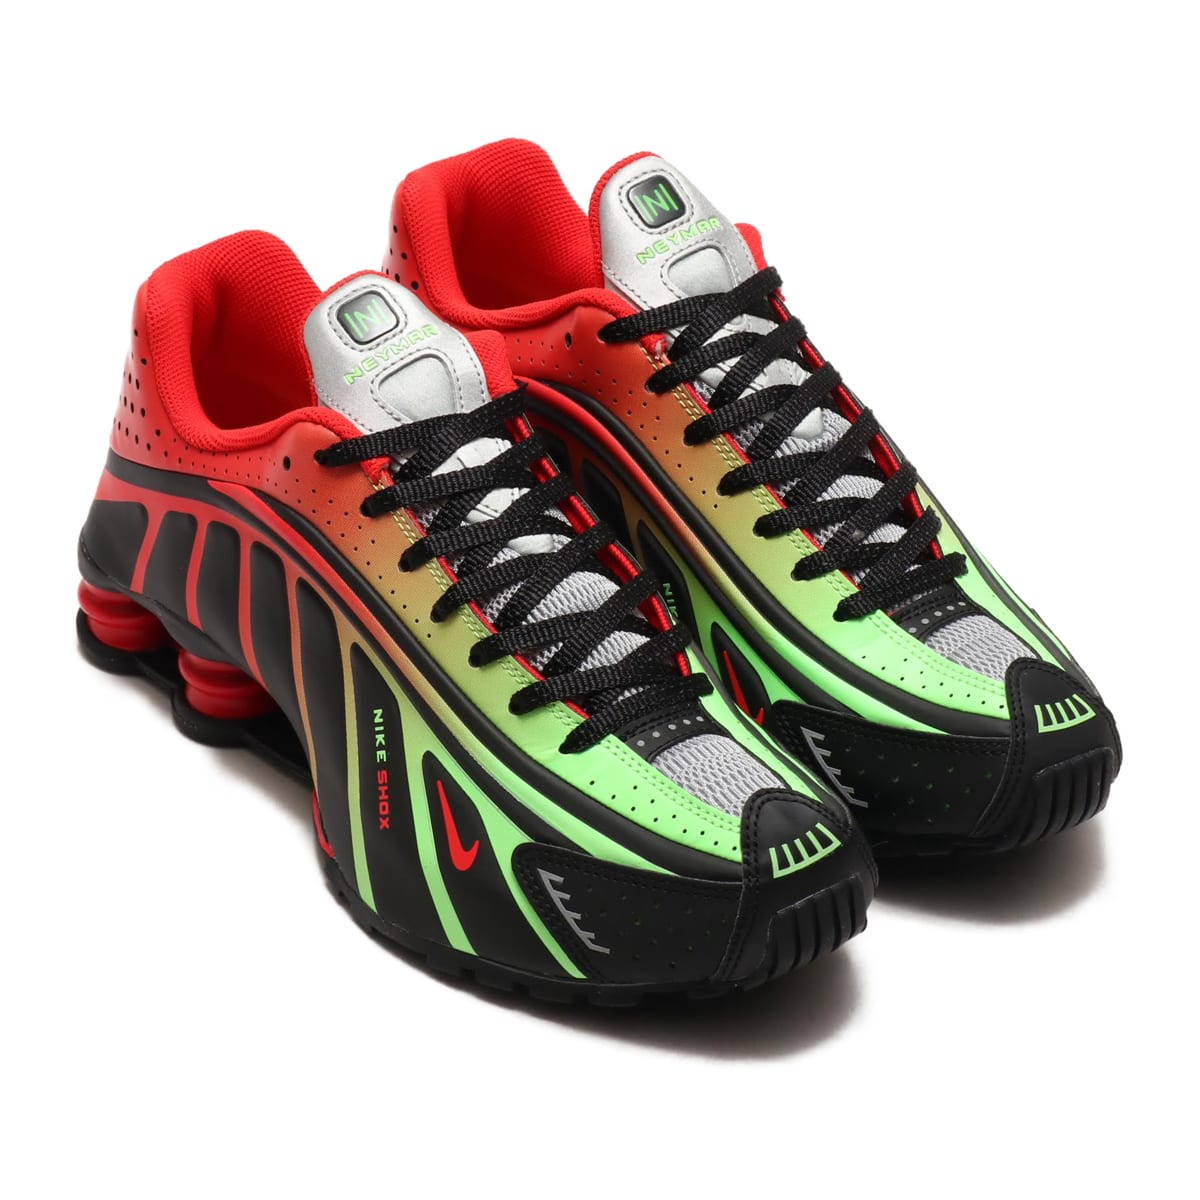 NIKE SHOX R4 / NEYMAR JR. BLACK/CHALLENGE RED-METALLIC SILVER 19SU-S_photo_large